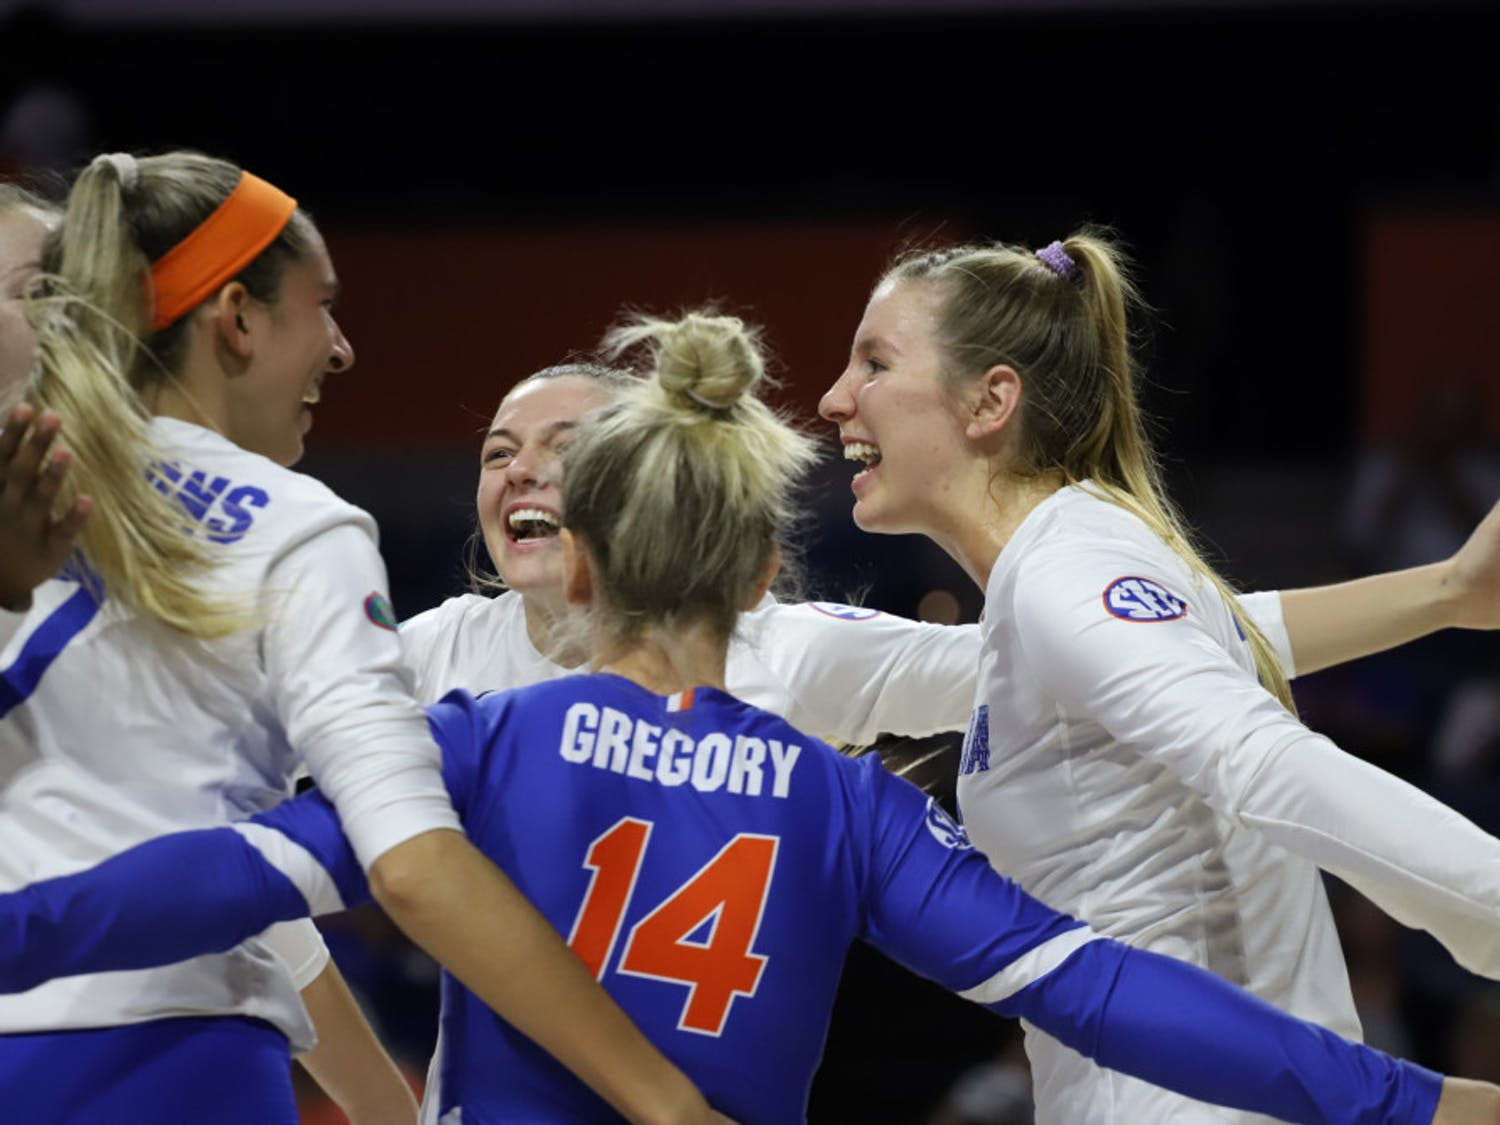 The Gators celebrate a successful play at home against Texas A&M last year. This season, Florida will only play the four SEC schools it's closest to due to the COVID-19 pandemic.